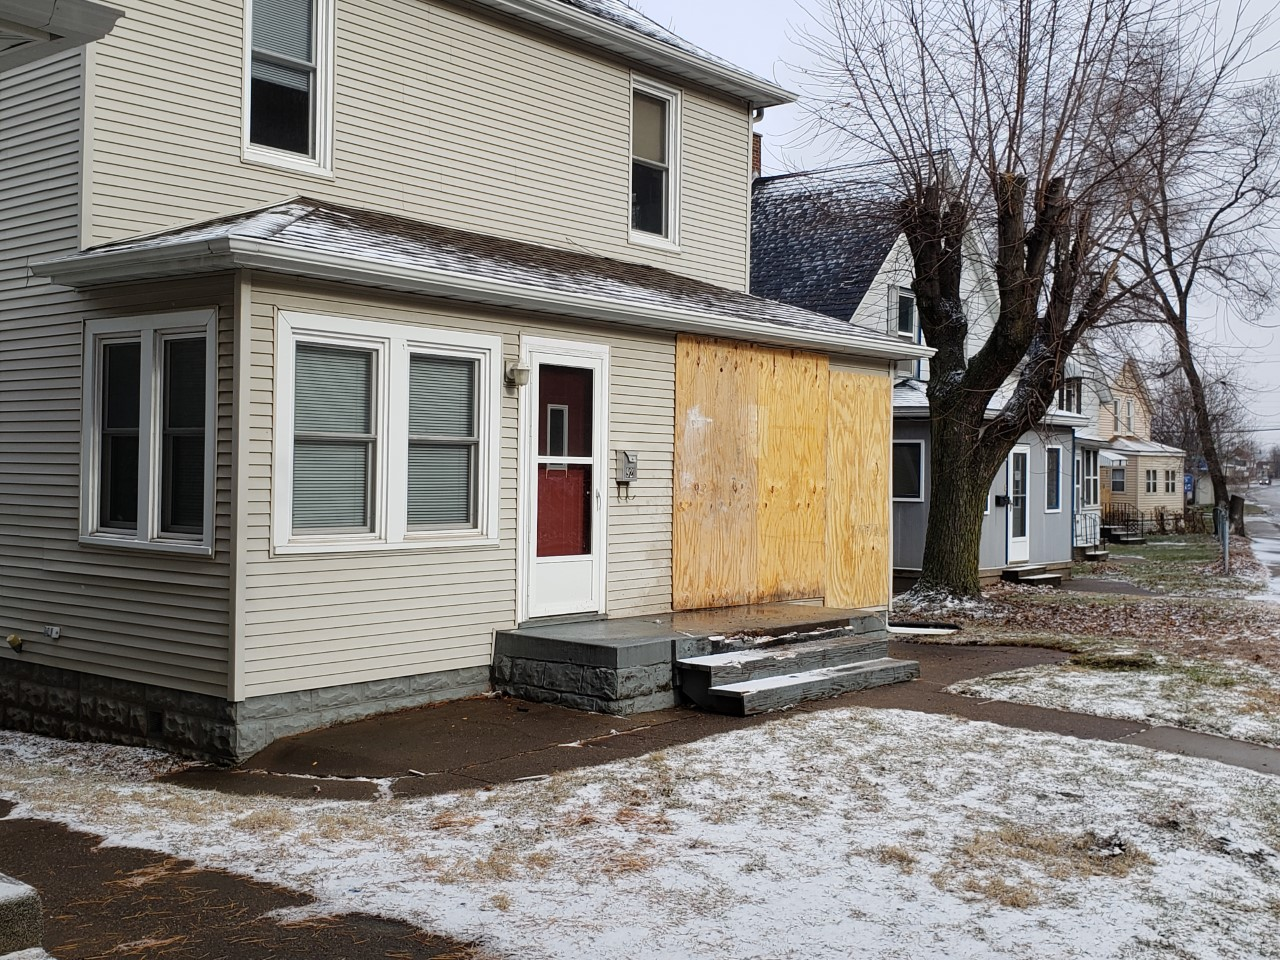 Damage to a house after being hit by a car in East Moline, Illinois on January 11, 2020 (Bryan Bobb, Ourquadcities.com)